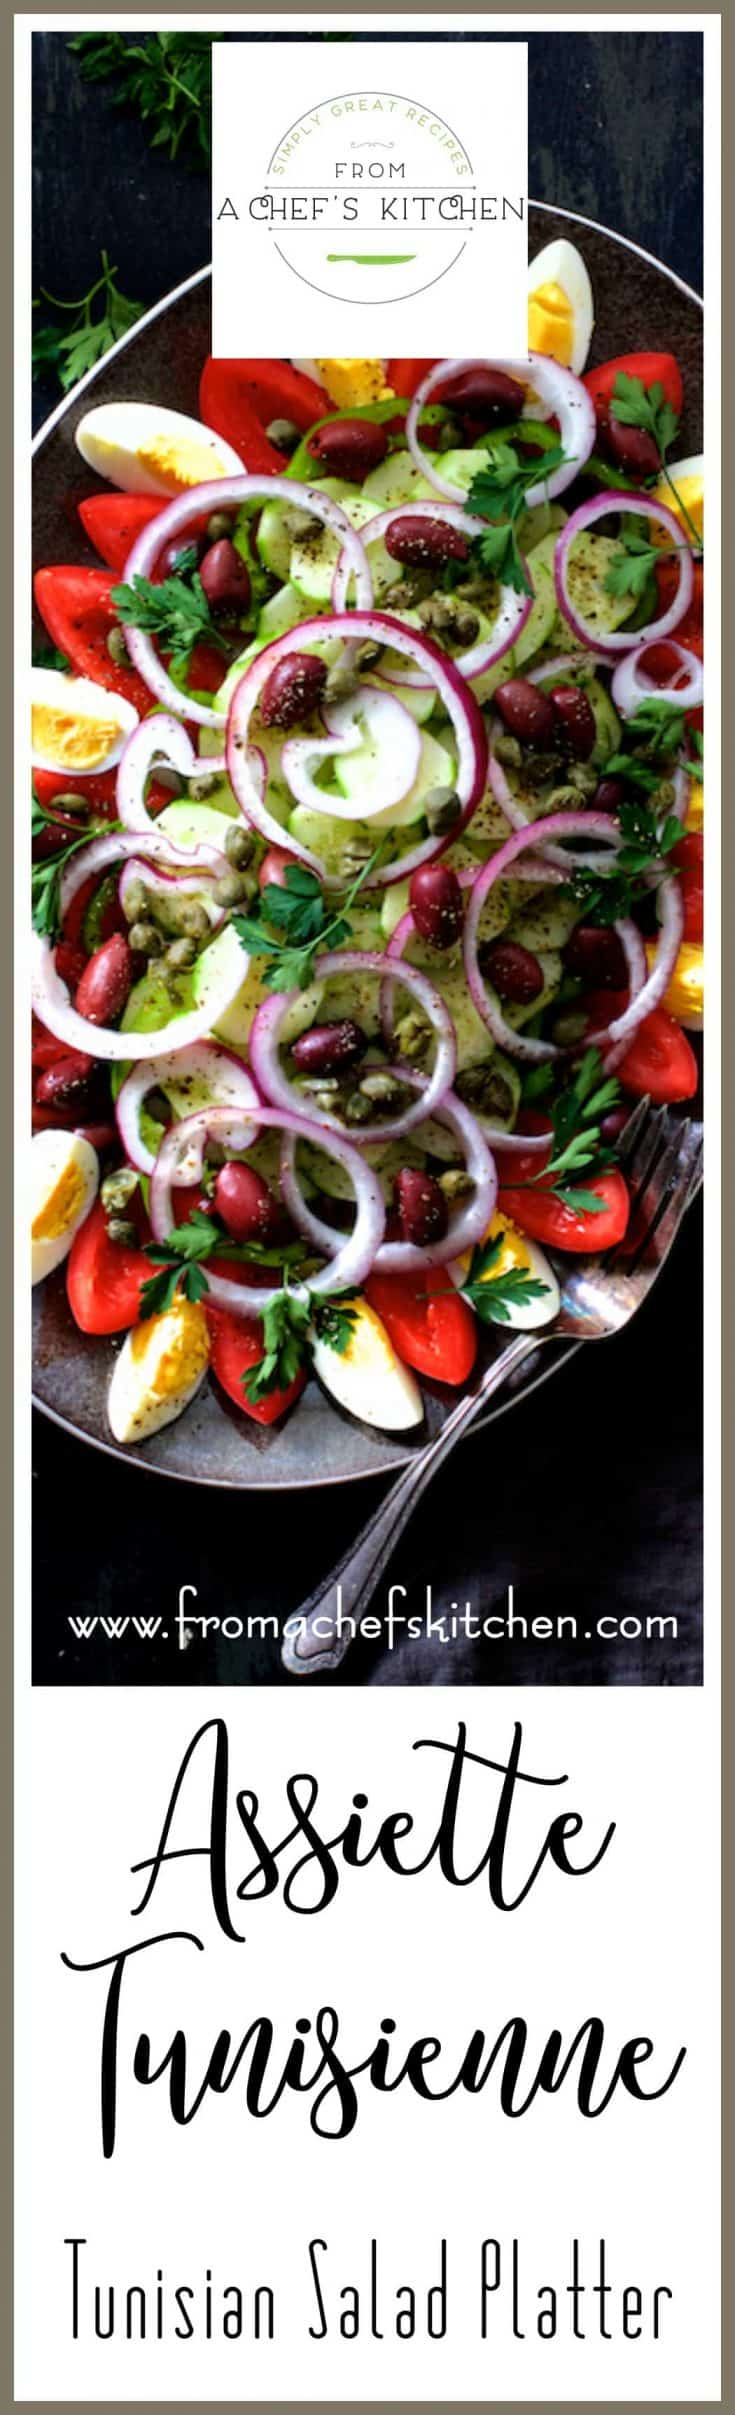 Tunisian Salad Platter (or Assiette Tunisienne) makes an impressive presentation for a buffet! Full of fresh, crunchy vegetables, olives, capers and drizzled with a simple red wine vinaigrette, this is THE salad to make all summer long!  #salad #tunisian #mediterraneanfood #mediterraneansalad